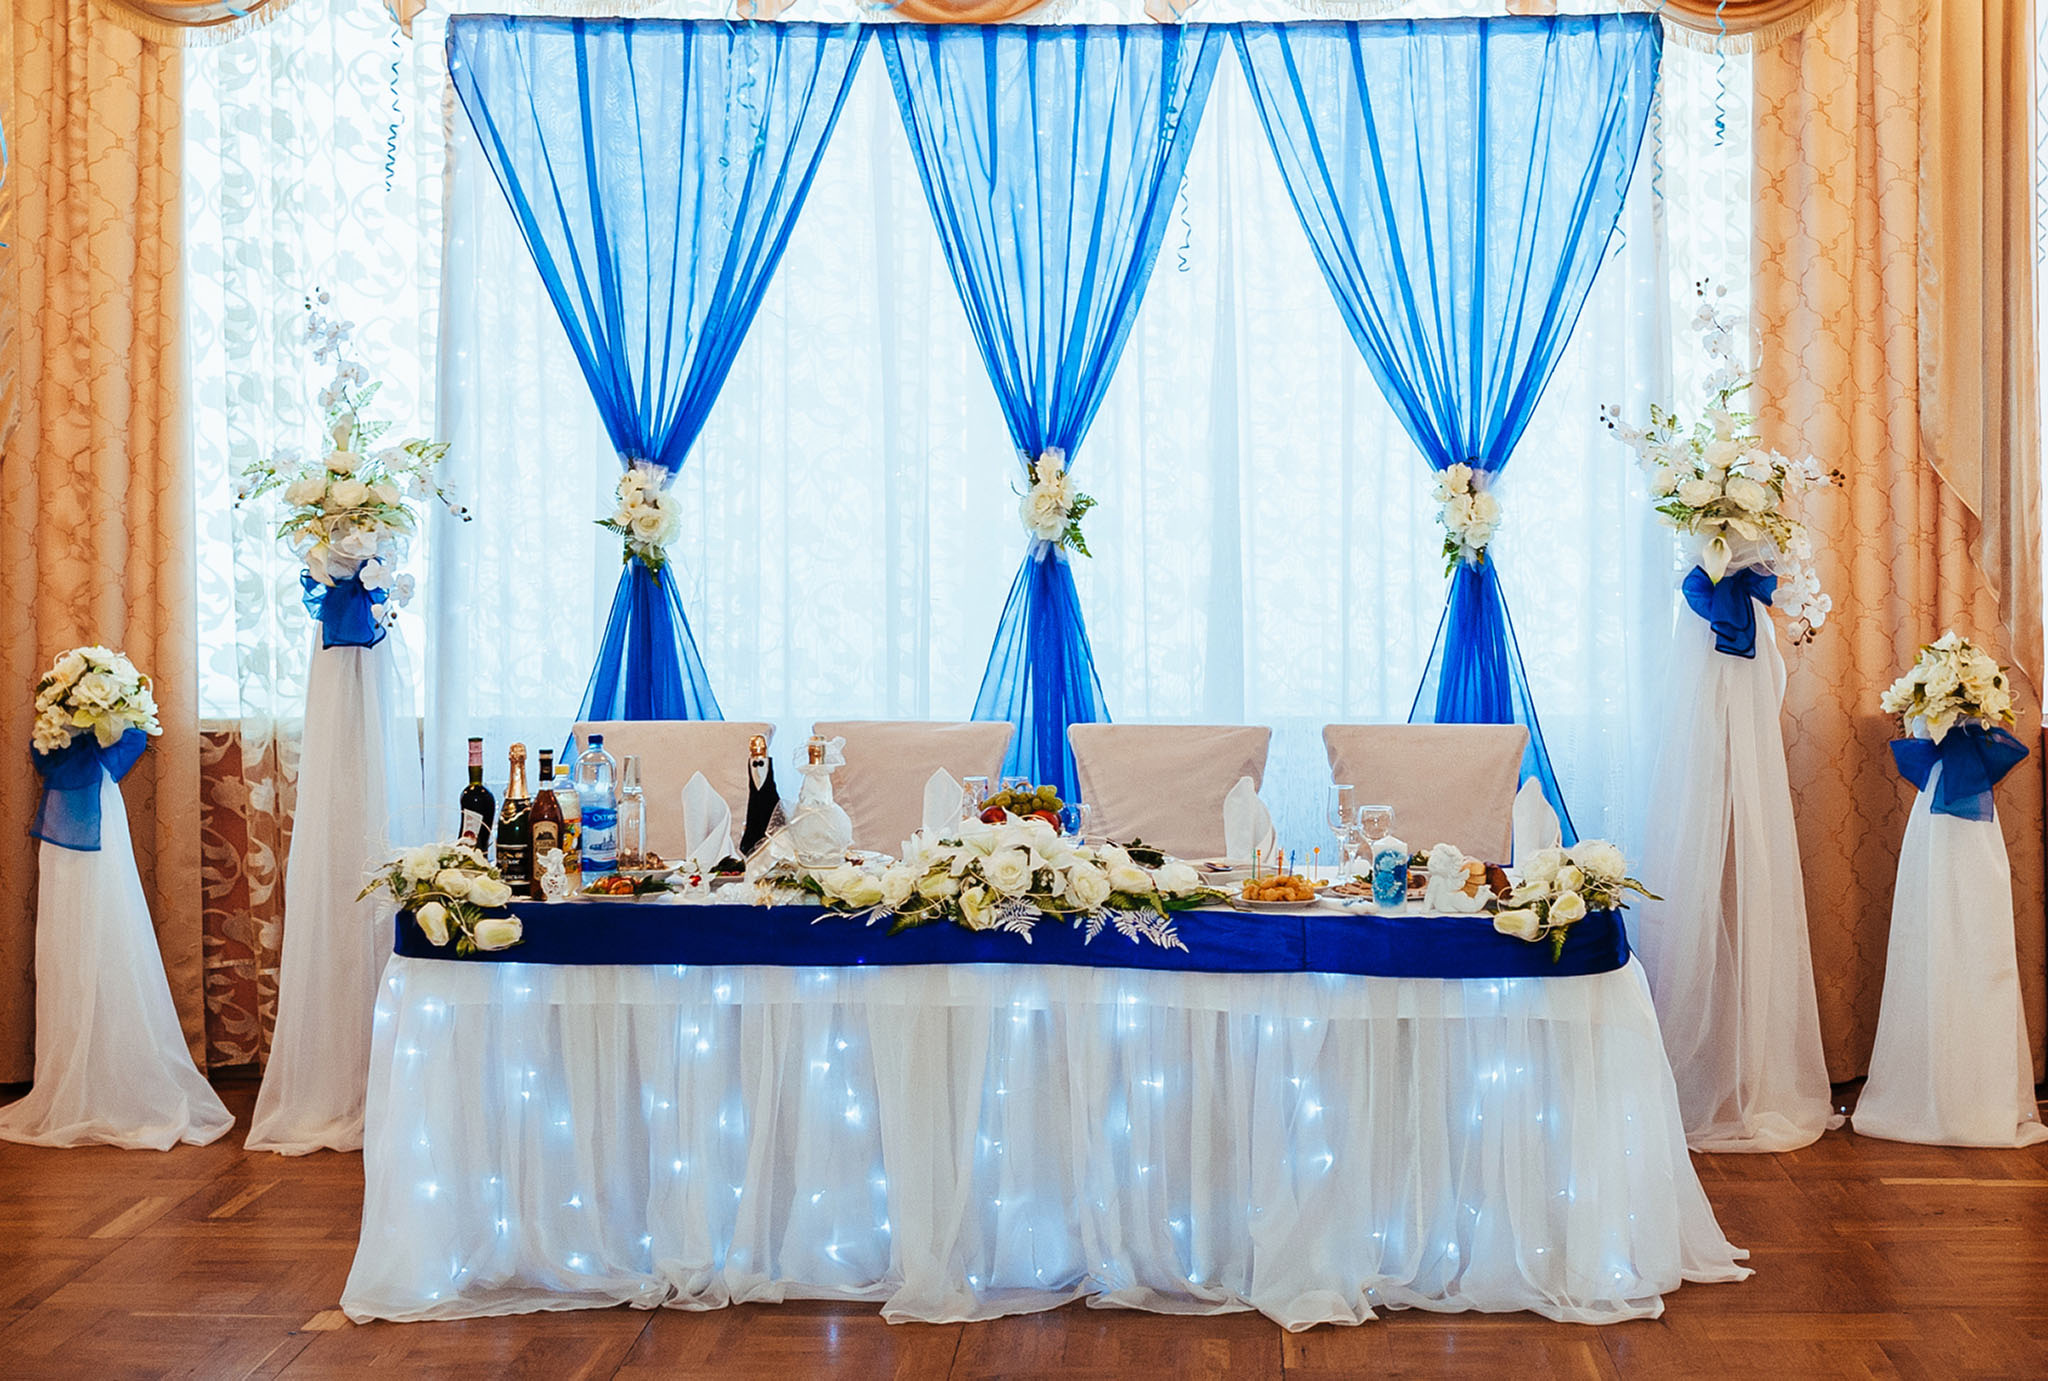 roll deal drapery with drapes drpery rental on wedding organza chair linen design yard maked this cover best